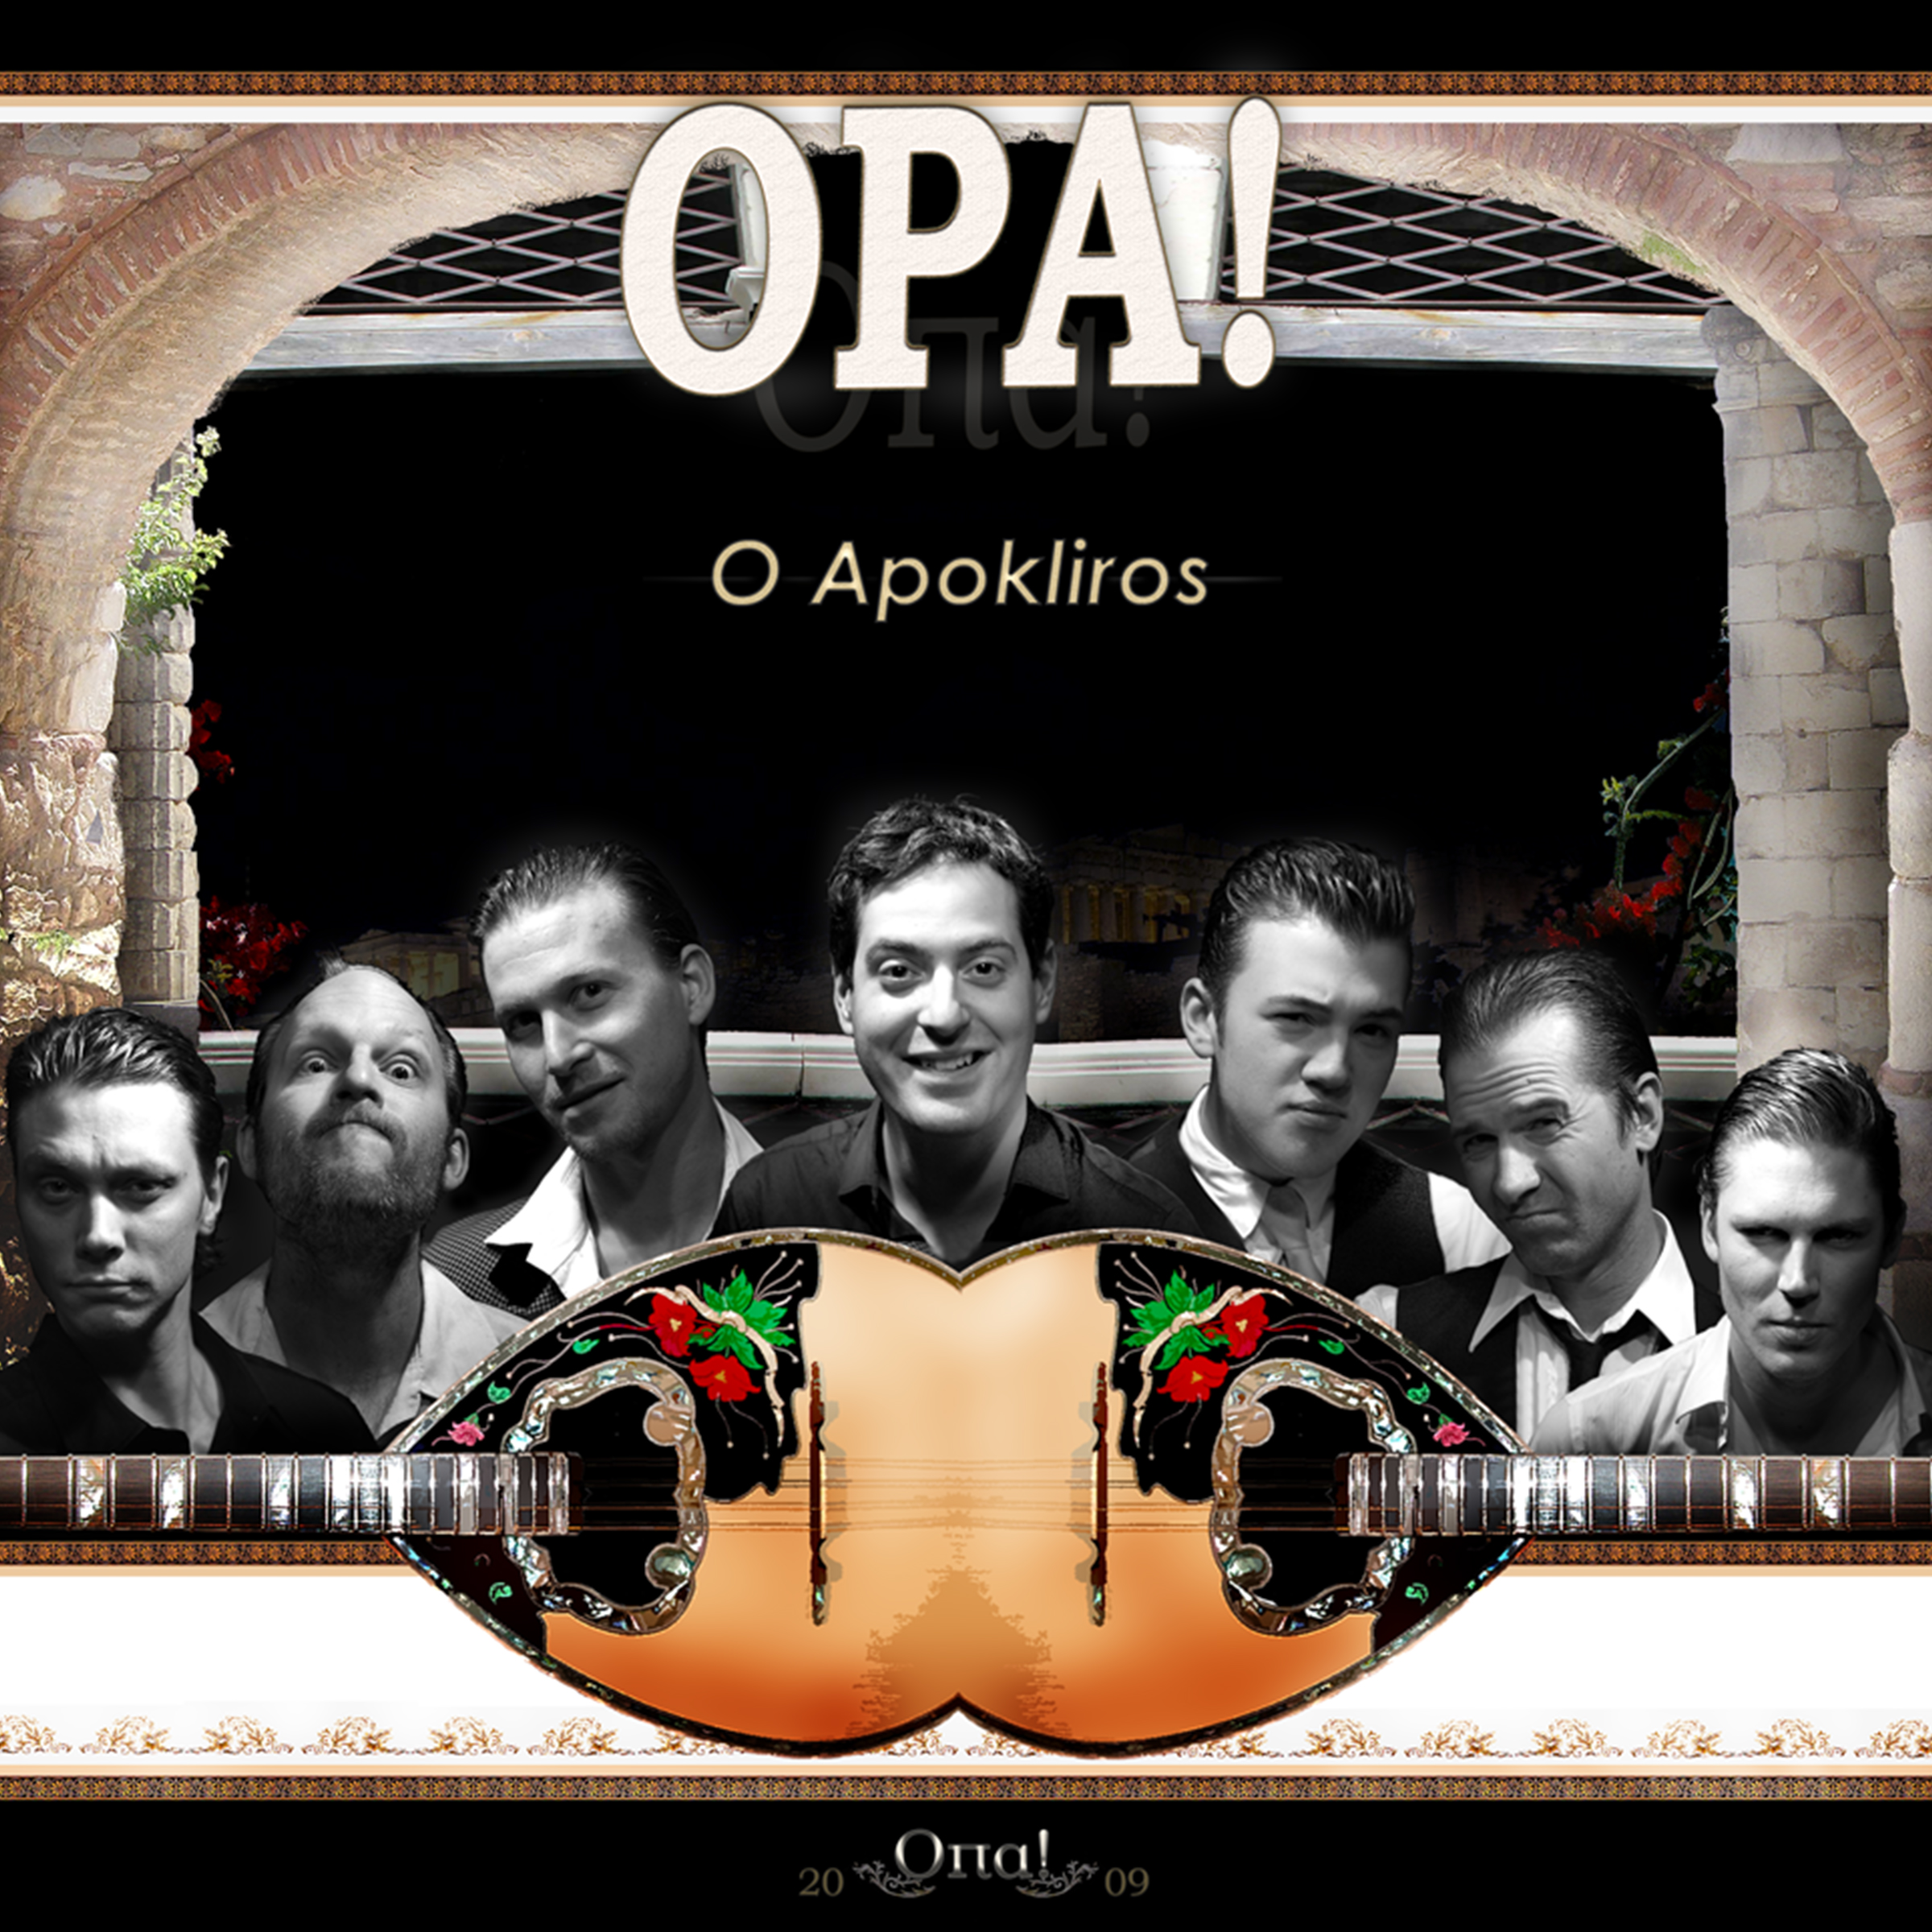 DOWNLOAD: Visit iTunes Music Store or or your favourite download store. OPA - O Apokliros monophon MPHEP001, 2009.